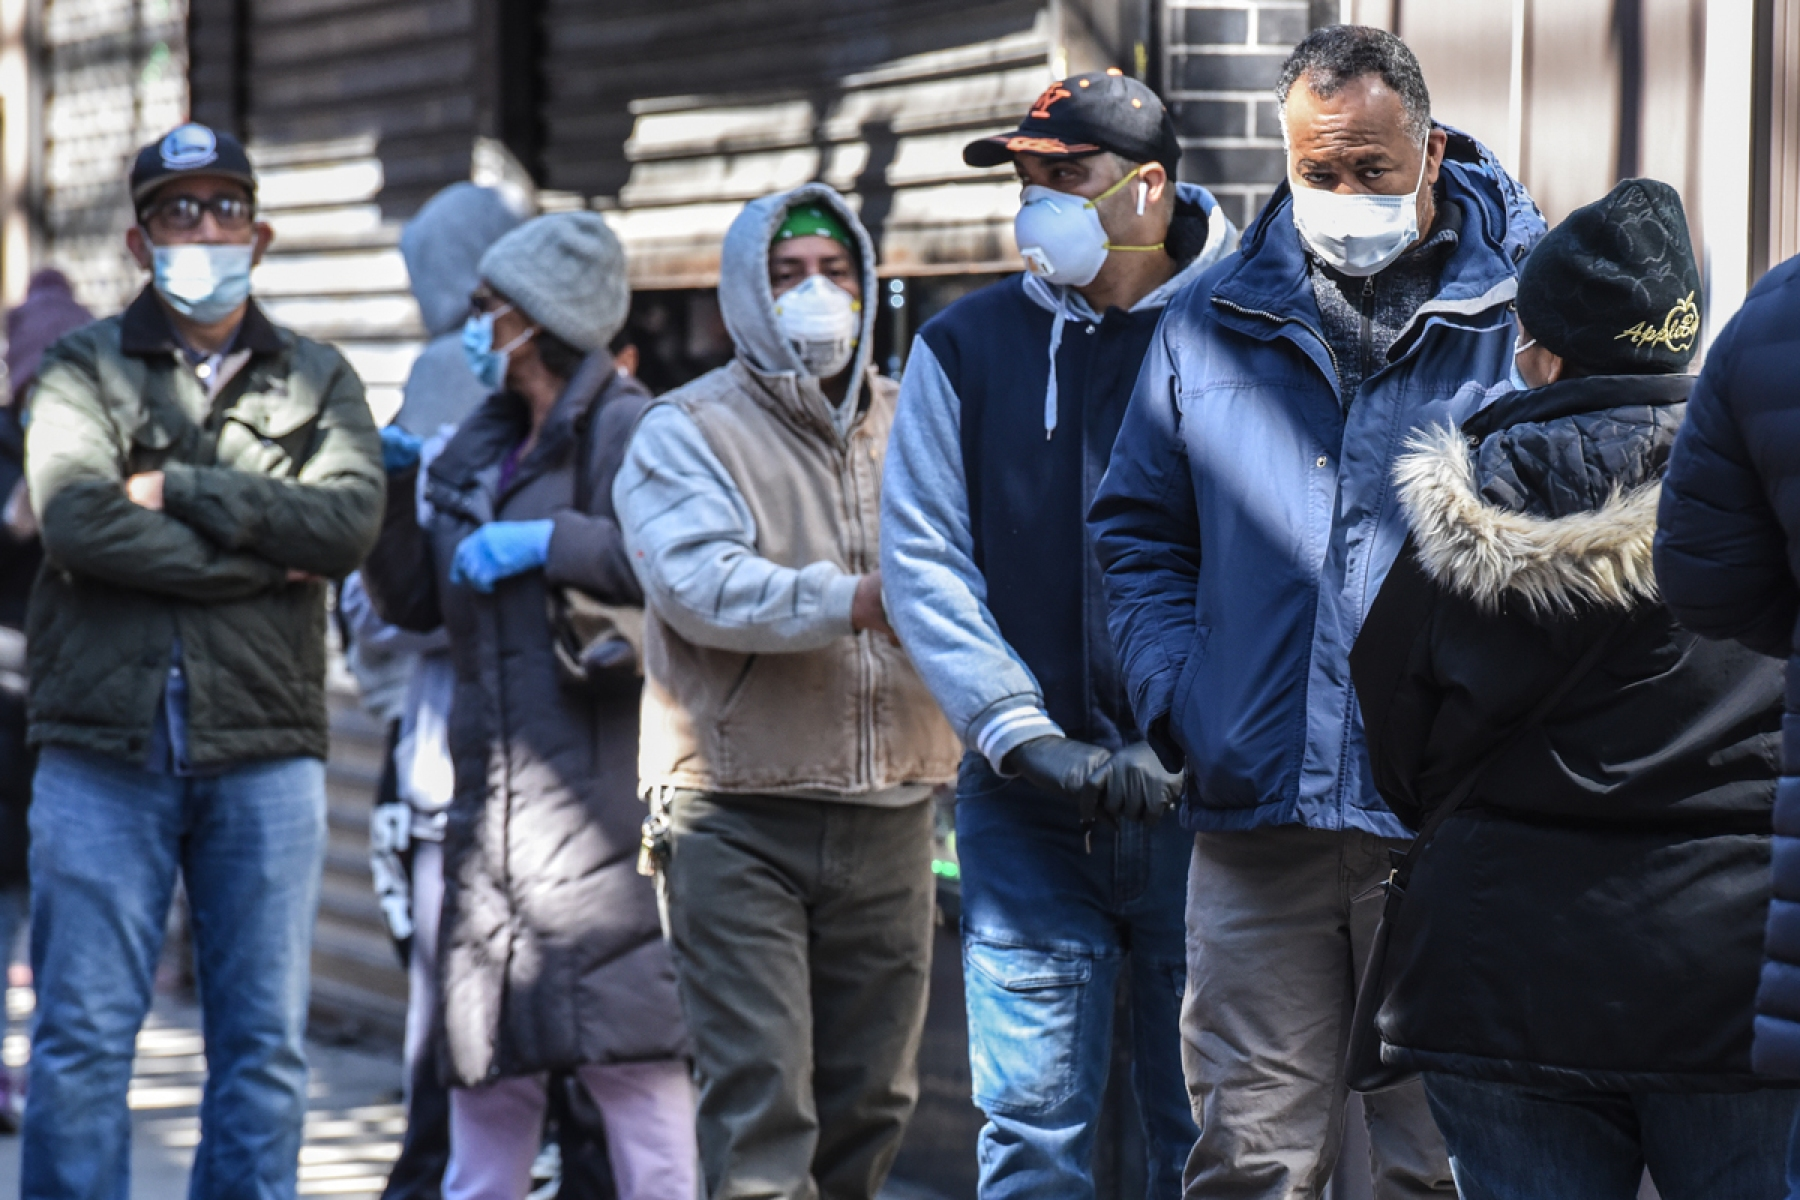 People stand in line while wearing face masks in the Elmhurst neighborhood on April 1, 2020 in New York City.